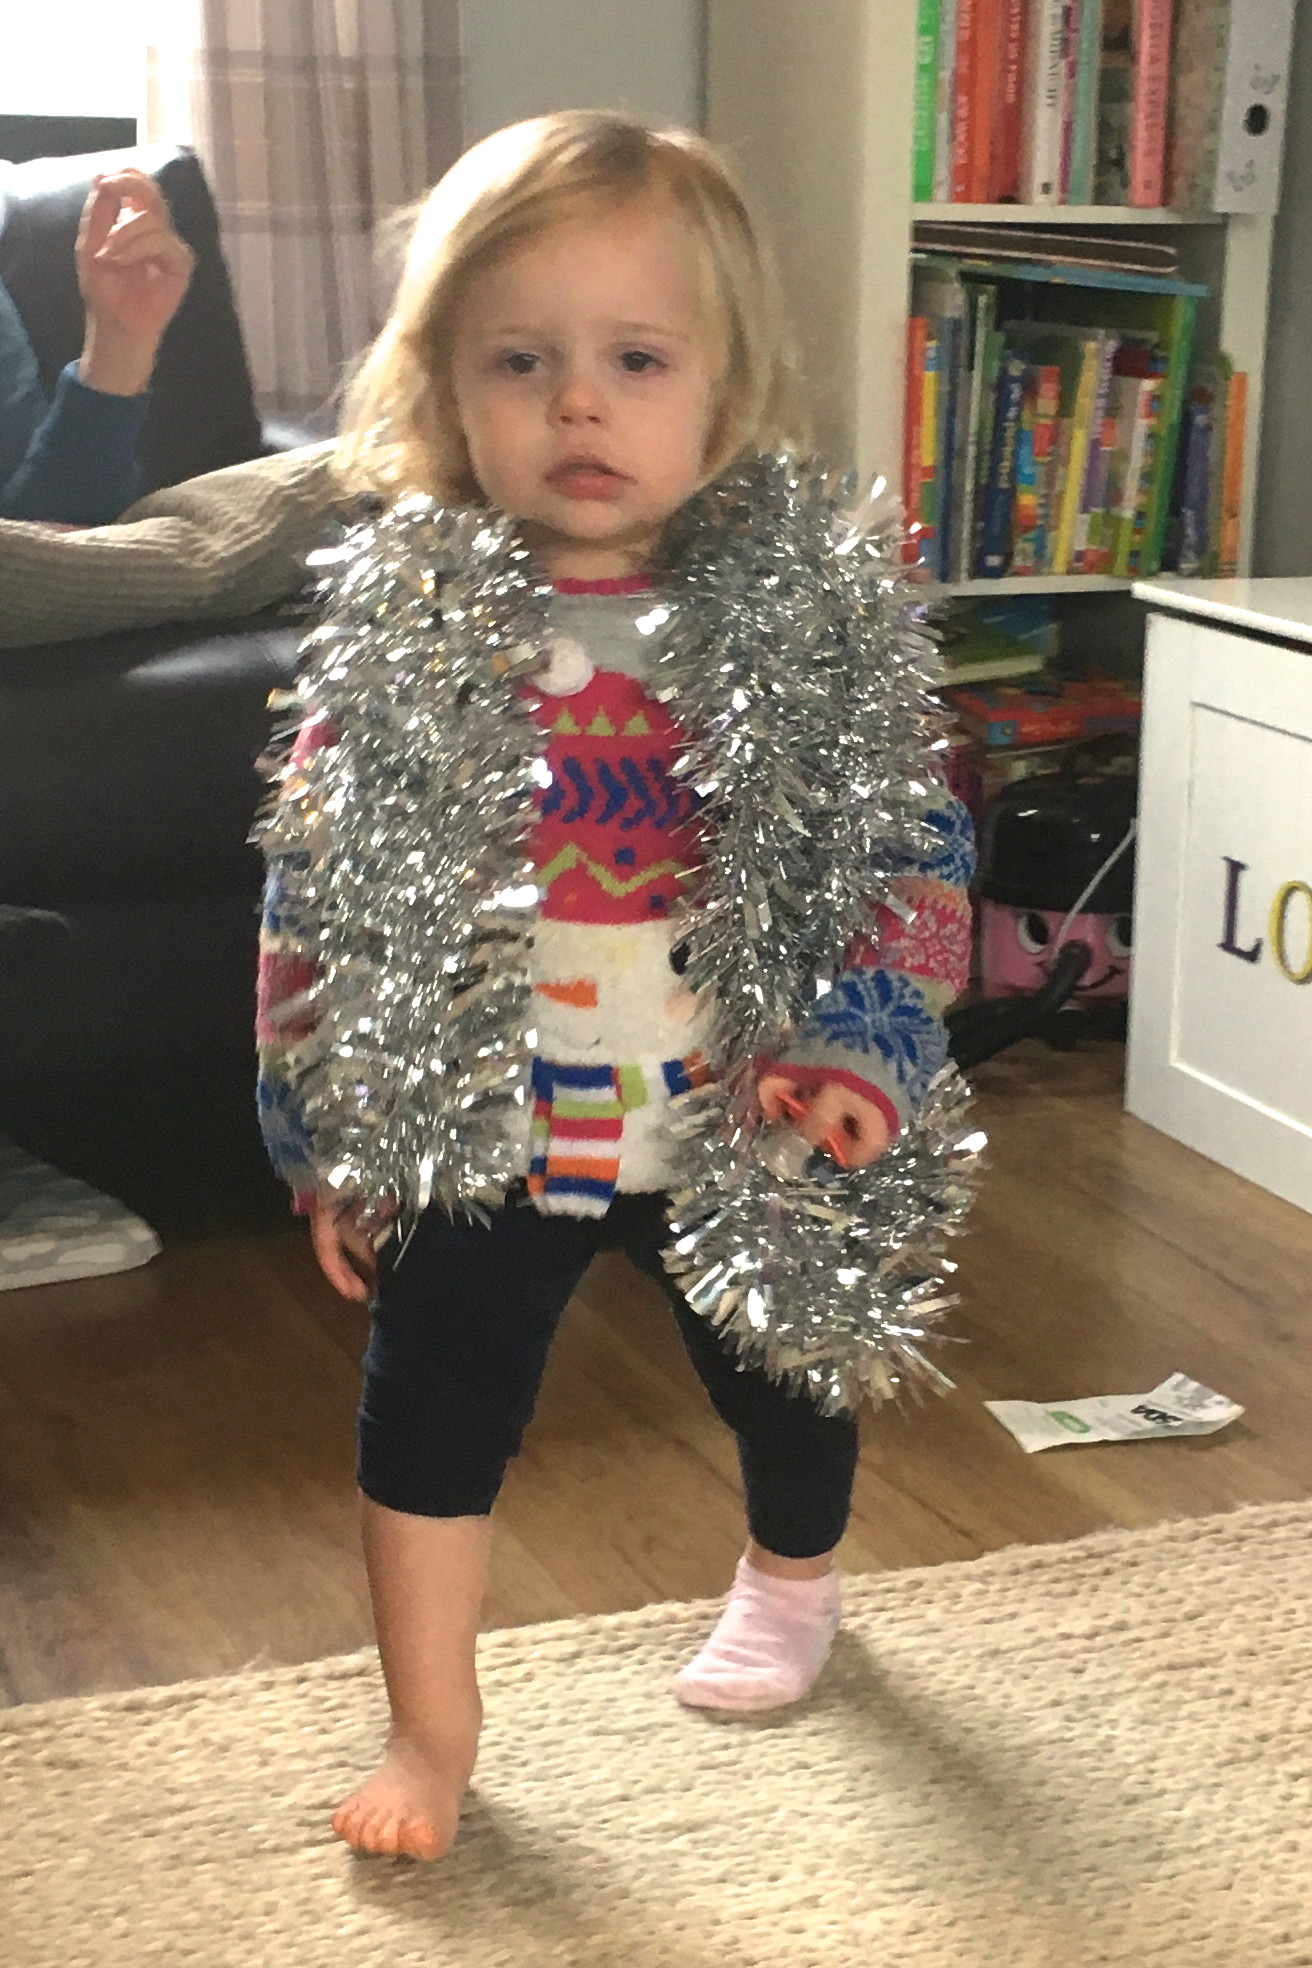 22 months old girl with tinsel around her shoulders